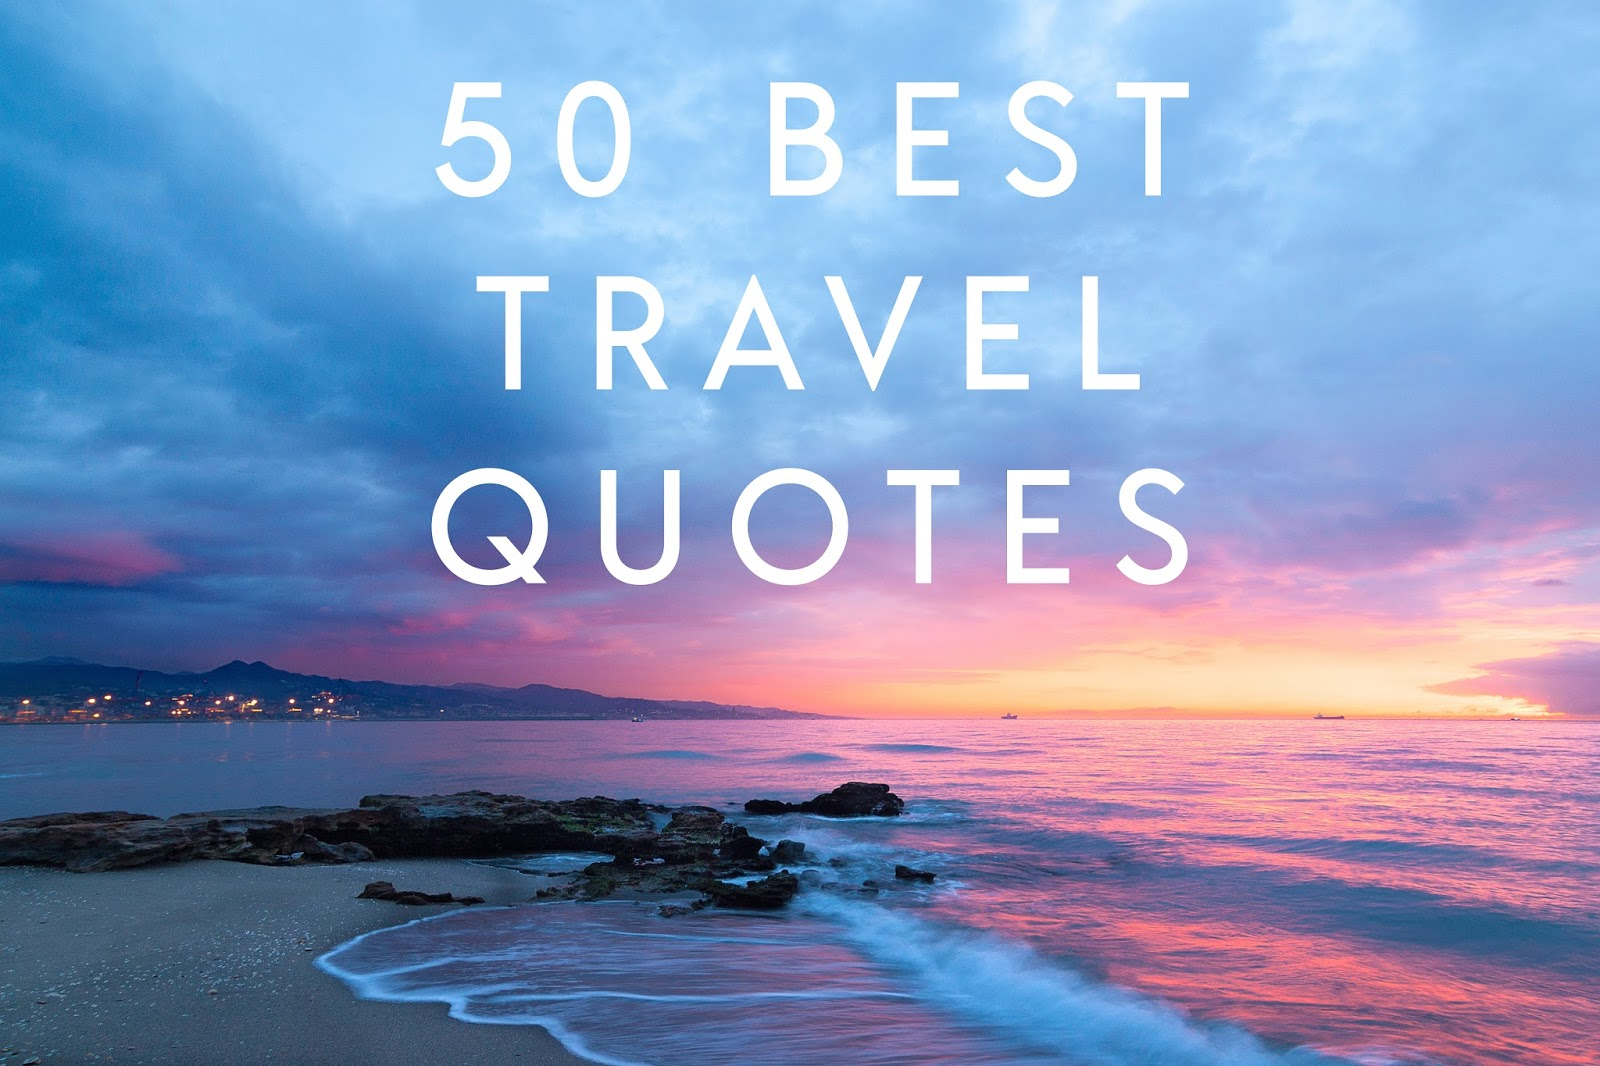 50 Inspiring Travel Quote Pictures: To Travel Lightly: 50 Best Travel Quotes For Travel